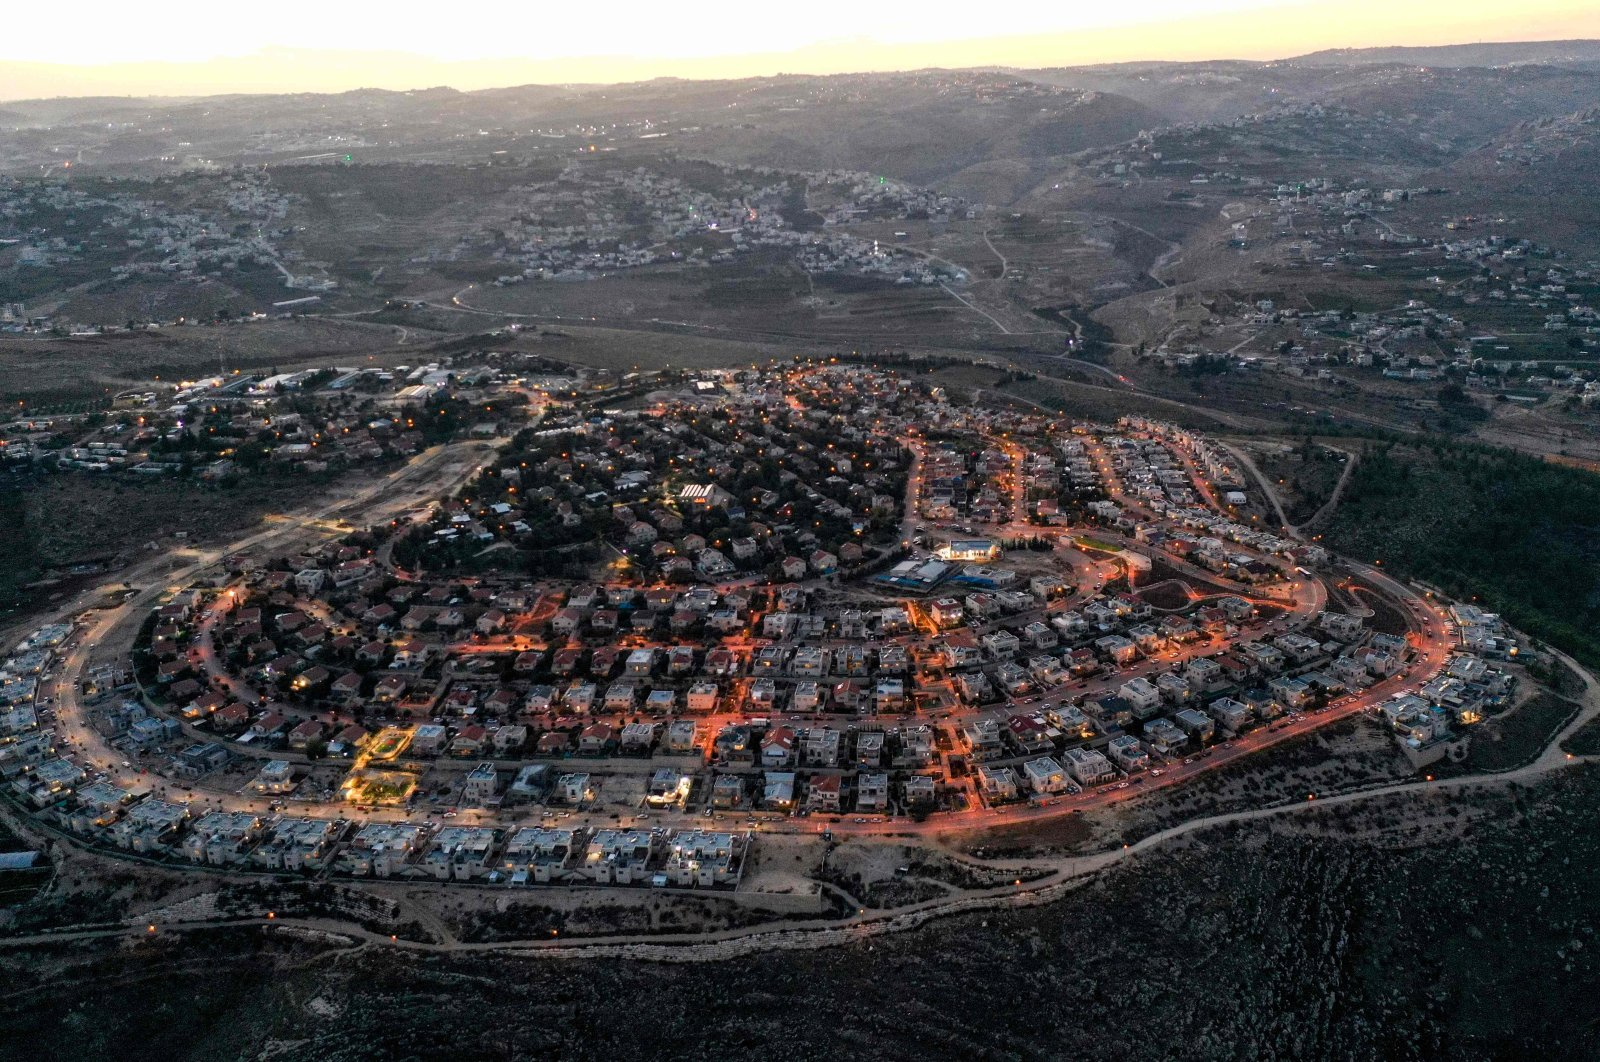 An aerial view of the Israeli settlement of Tekoa in the occupied West Bank, south of Bethlehem, Palestine, Nov. 17, 2020. (AFP Photo)